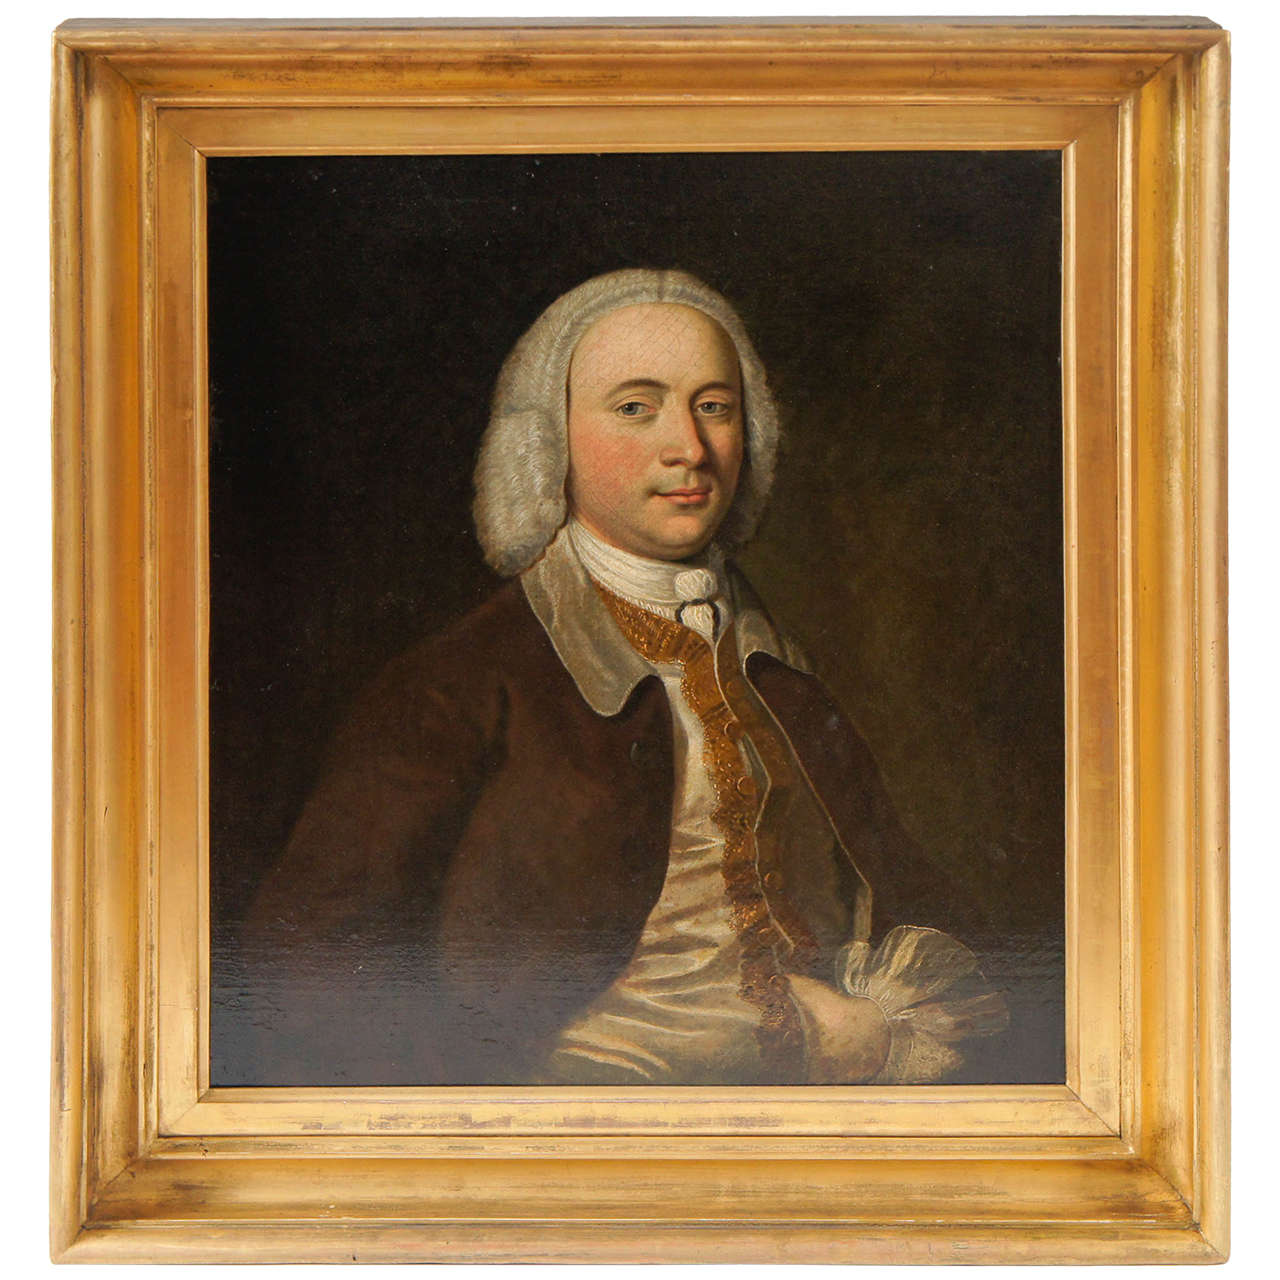 Exceptional Portrait of a Gentleman, England, circa 1740 1